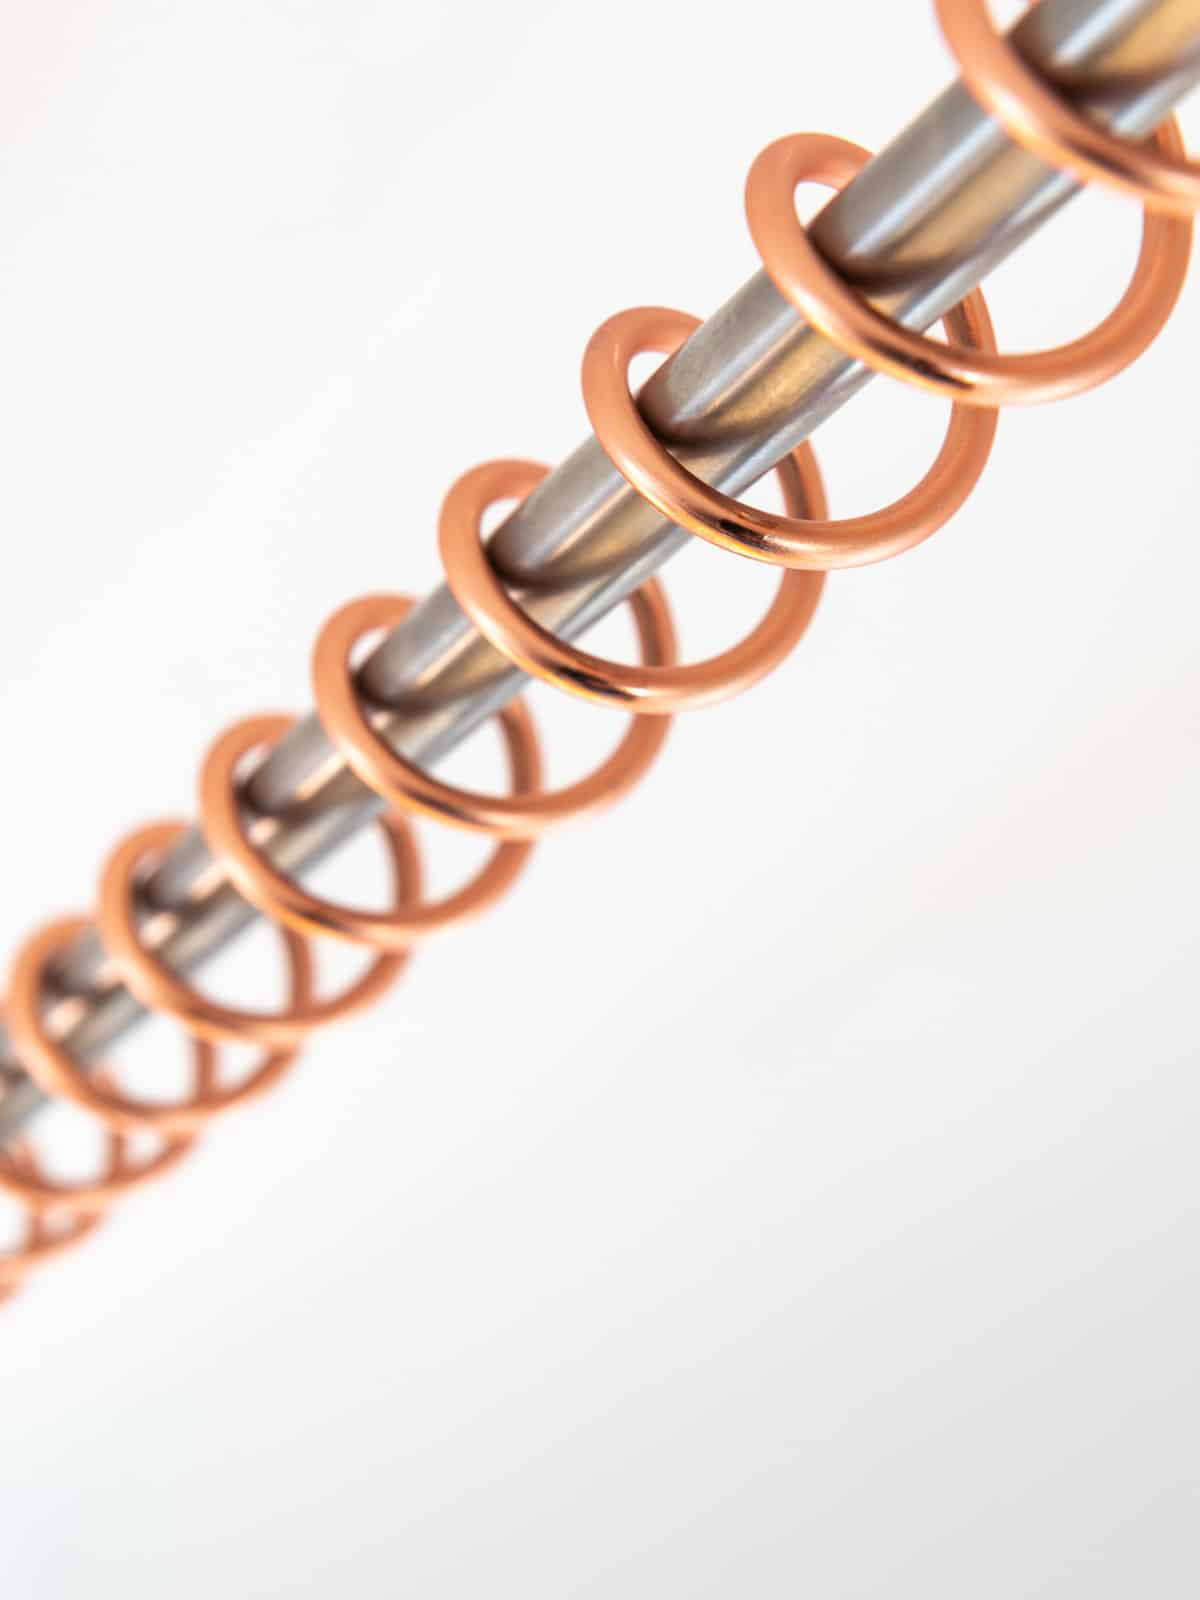 Zebedee Any Angle Hanging Rail - Rose Copper - Product image